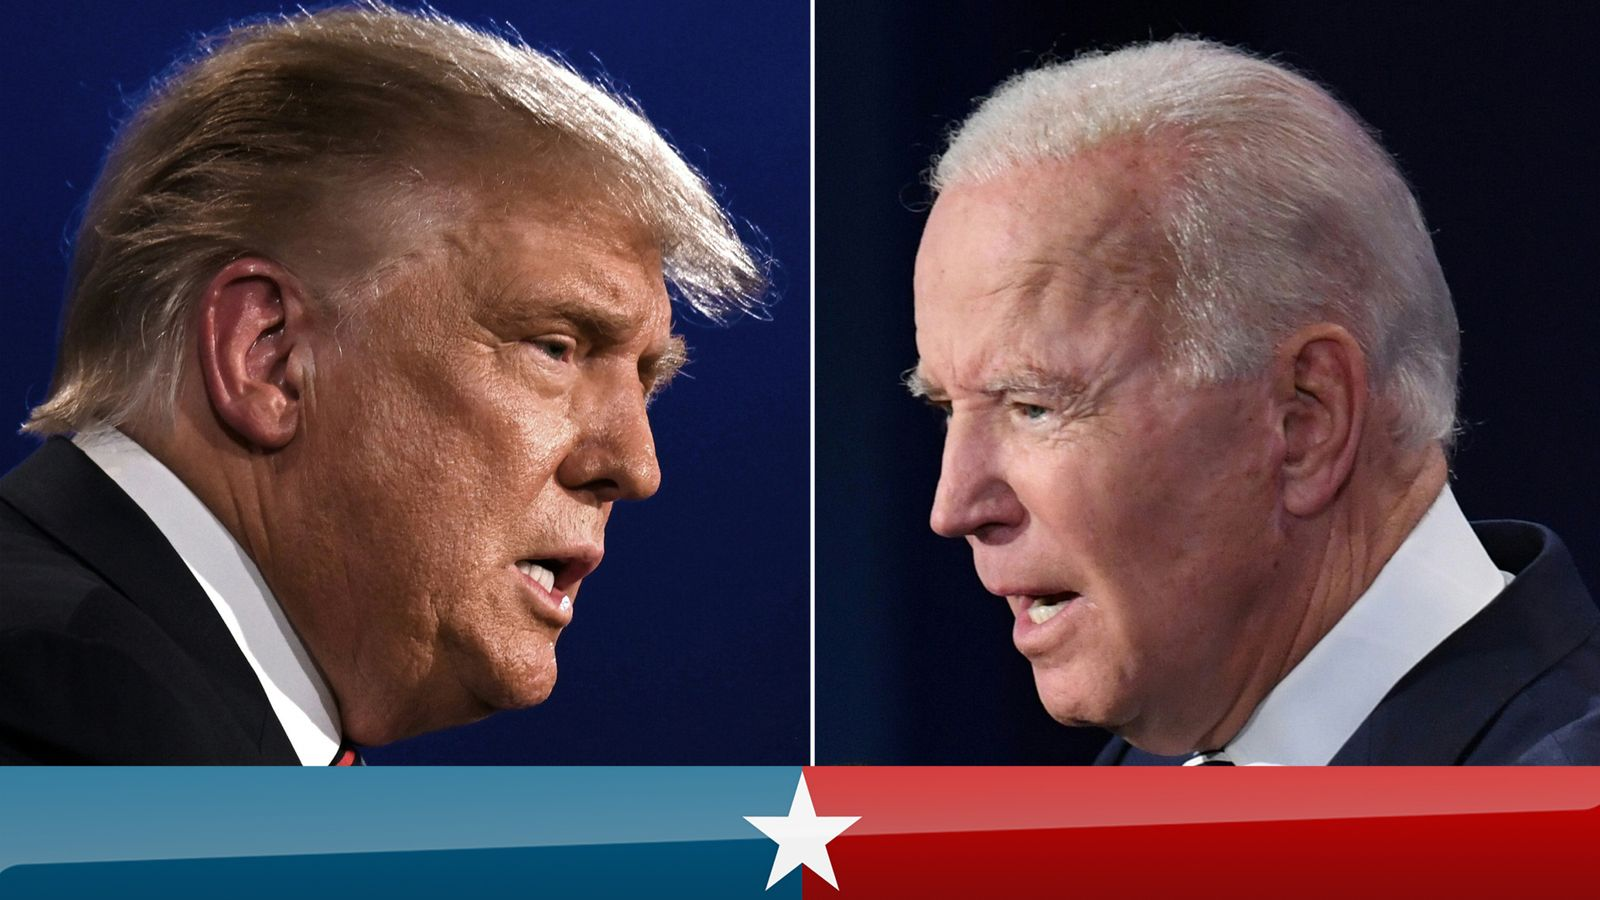 Us Election 2020 Head To Head For The Last Time As Trump And Biden Prepare For The Final Presidential Debate Us News Sky News